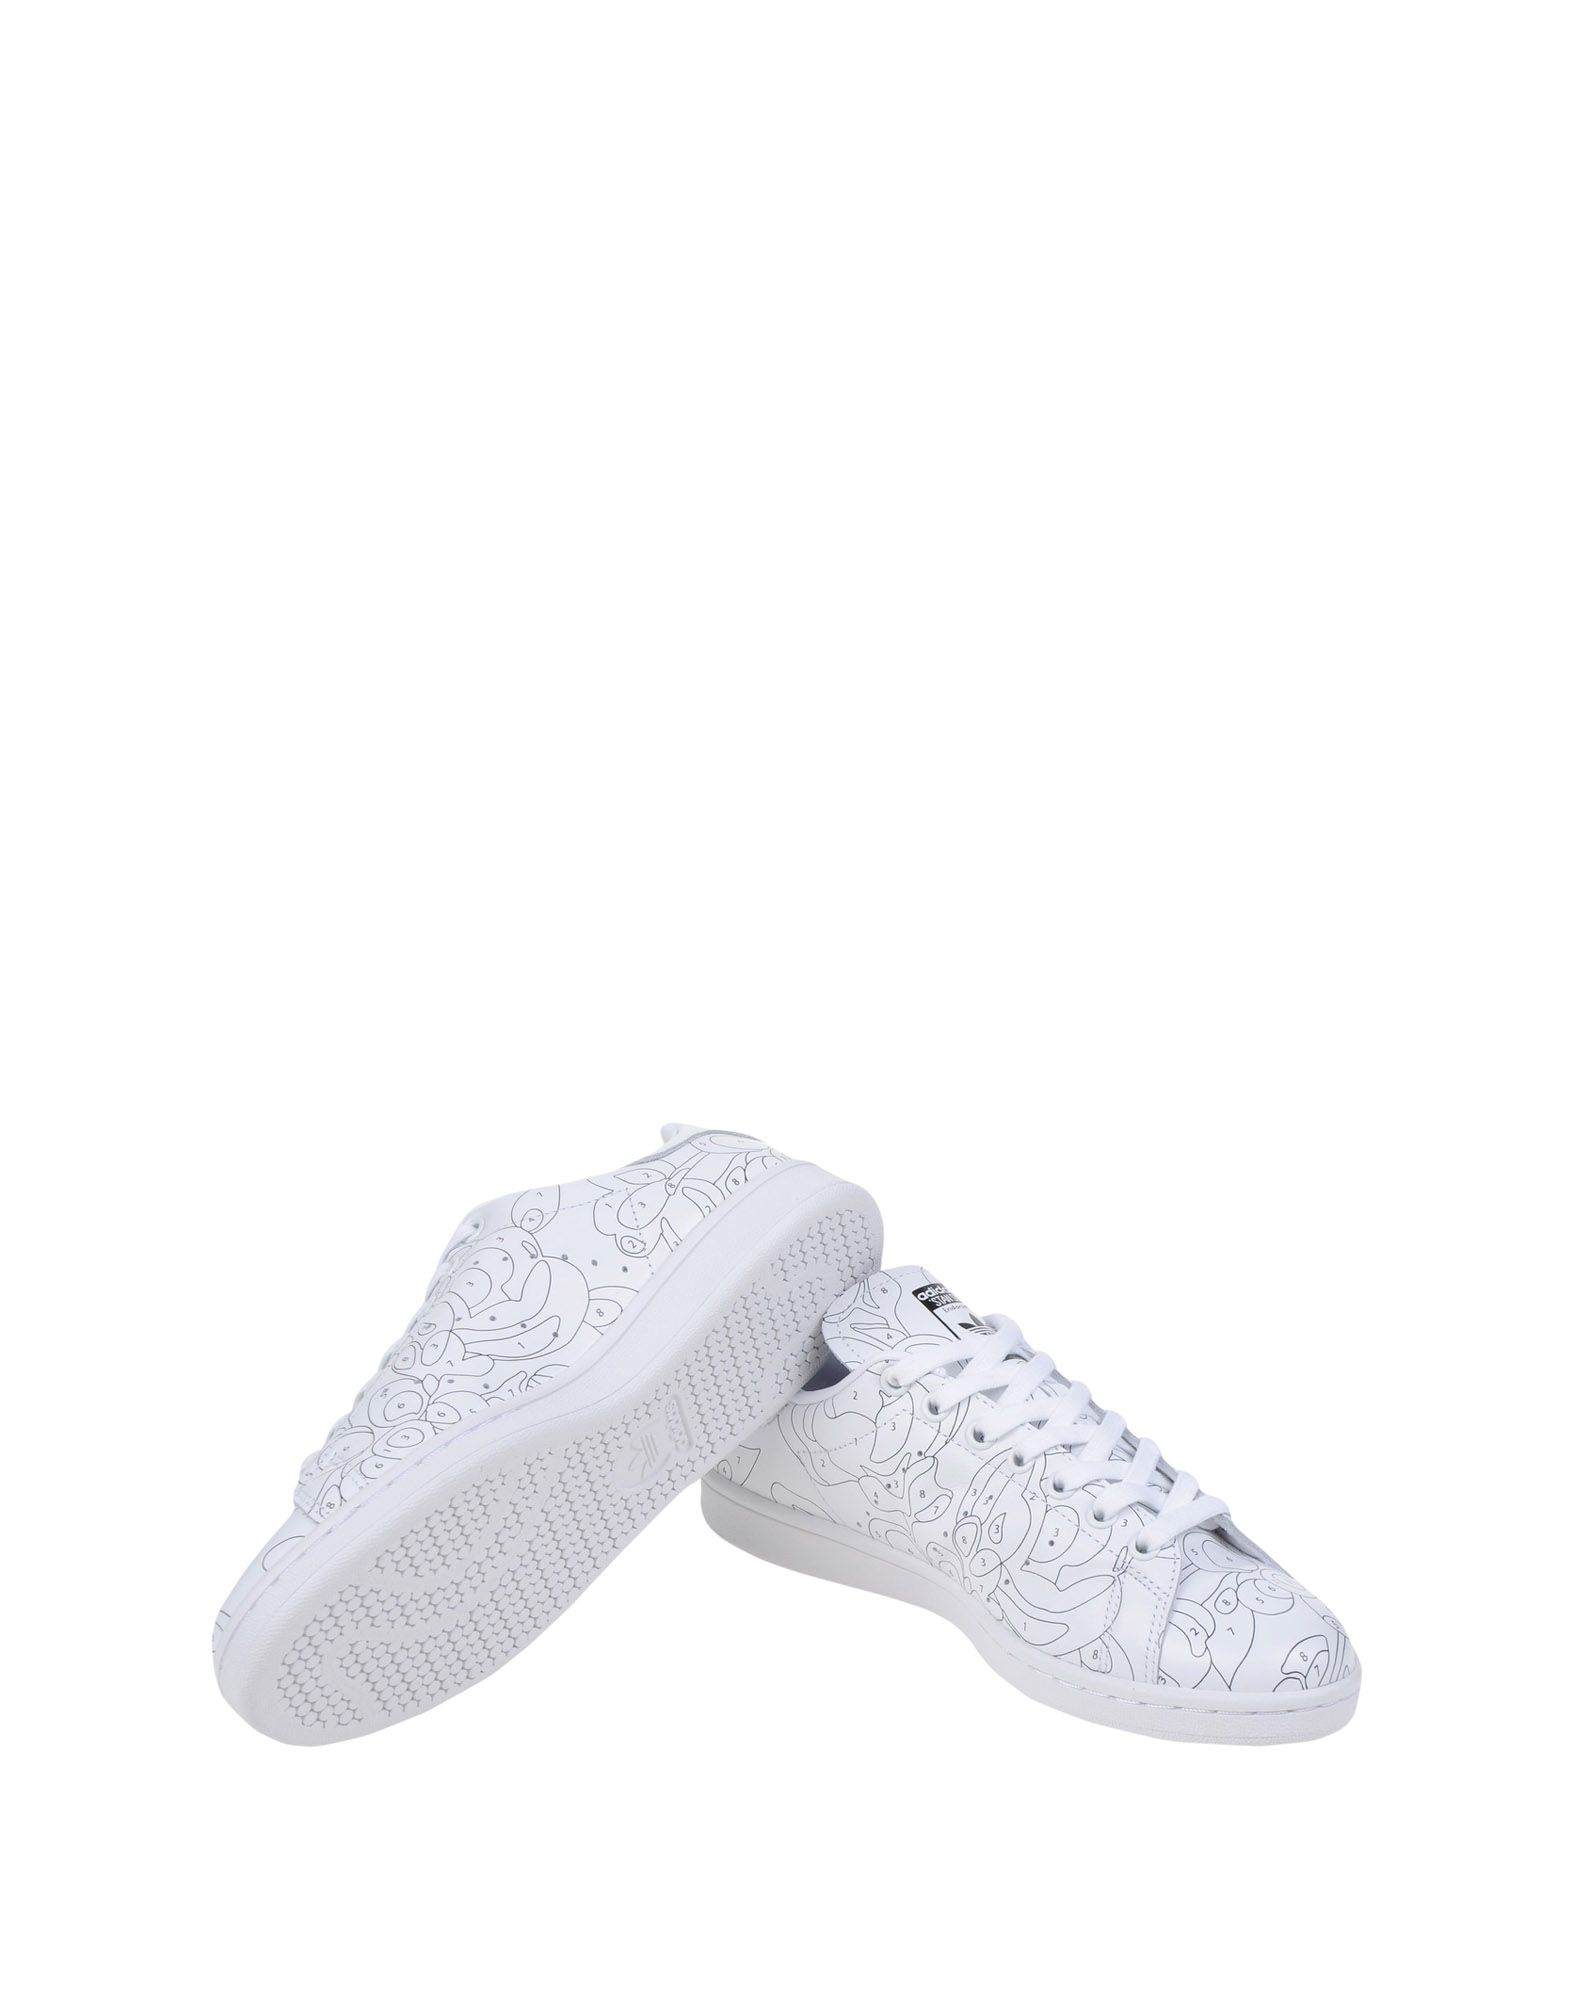 Sneakers Adidas Originals By Rita Ora Stan Smith Ro W - Femme - Sneakers Adidas Originals By Rita Ora sur